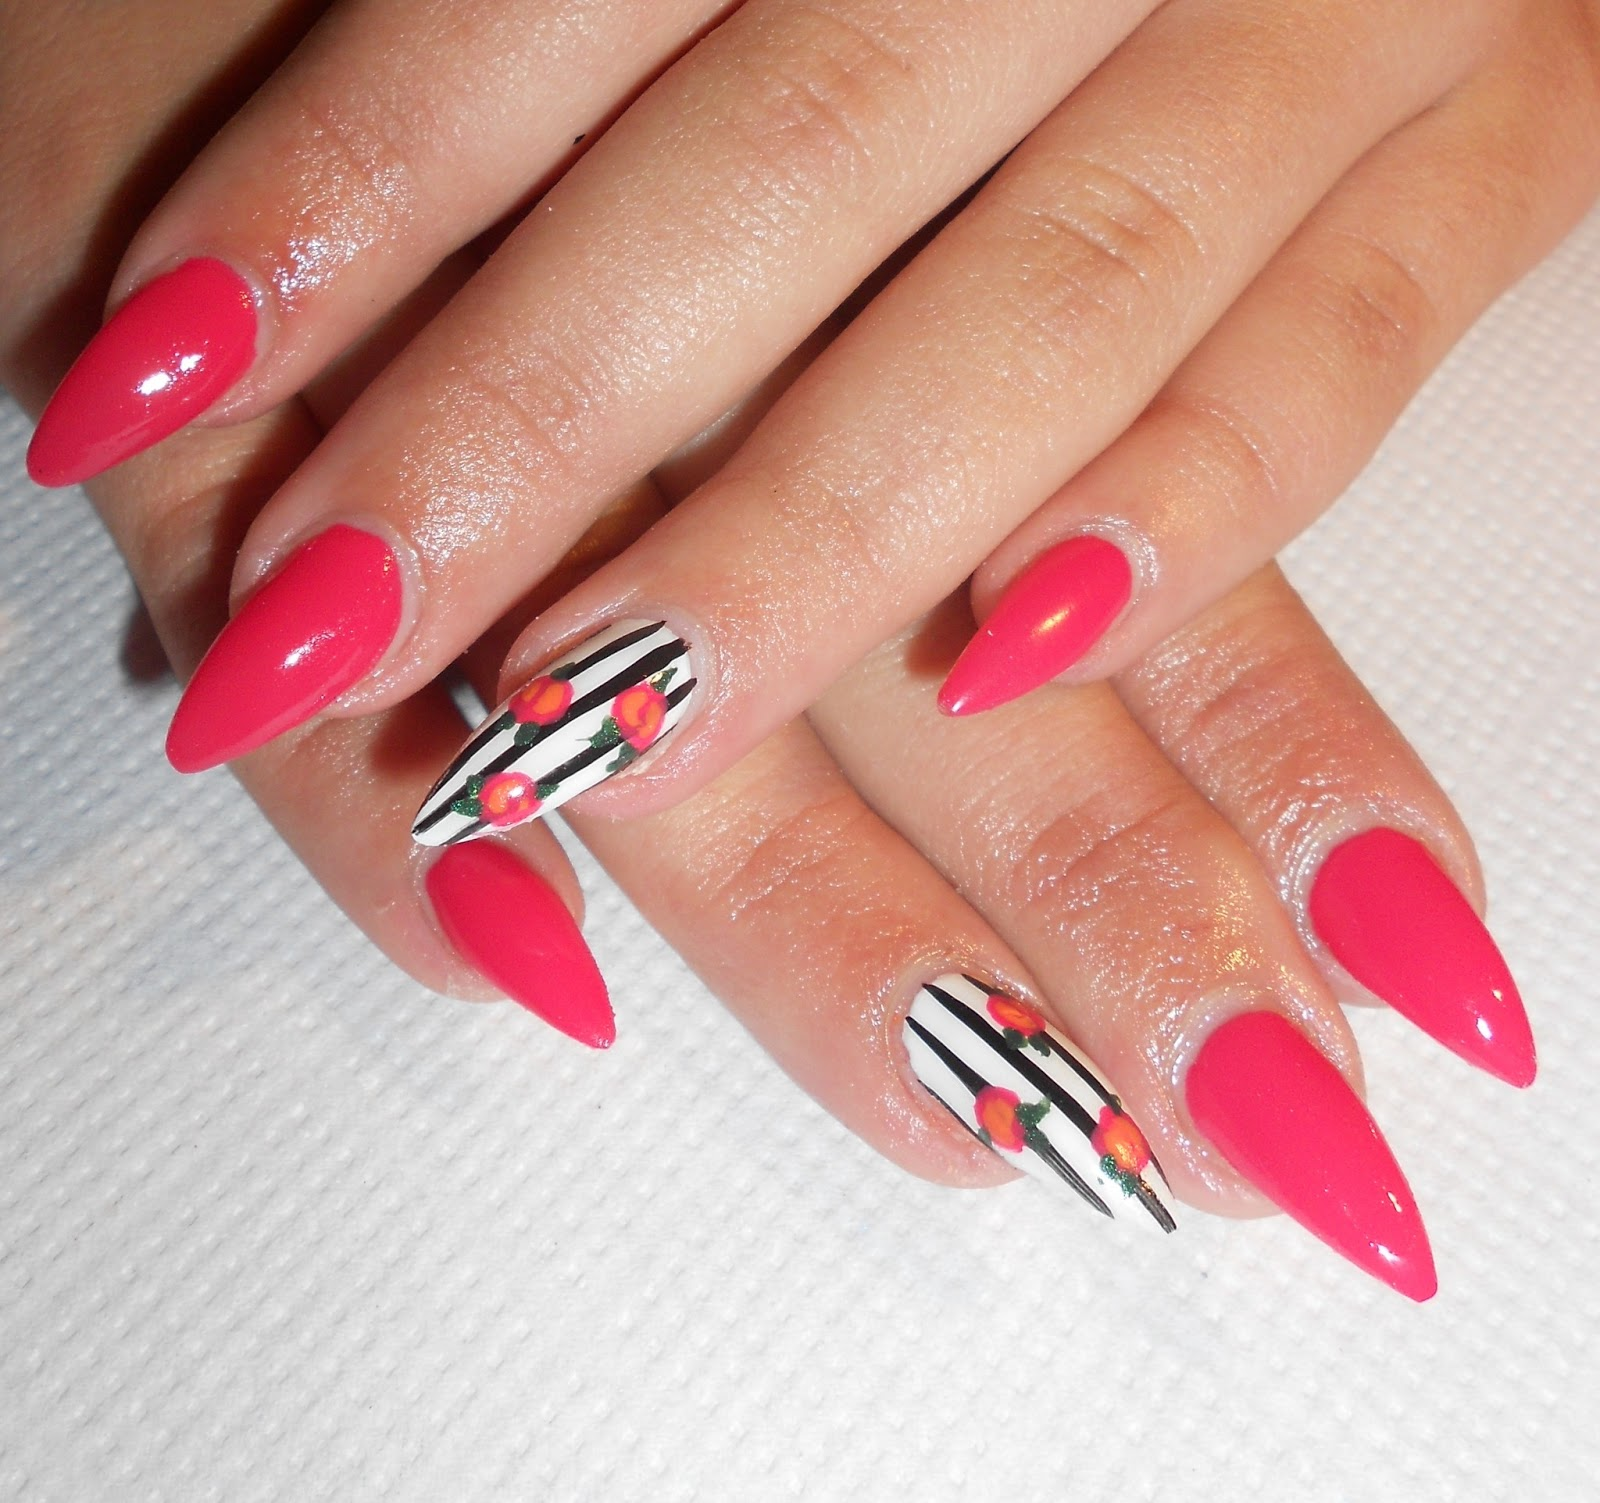 The Cool Nails art design pictures 2015 Images